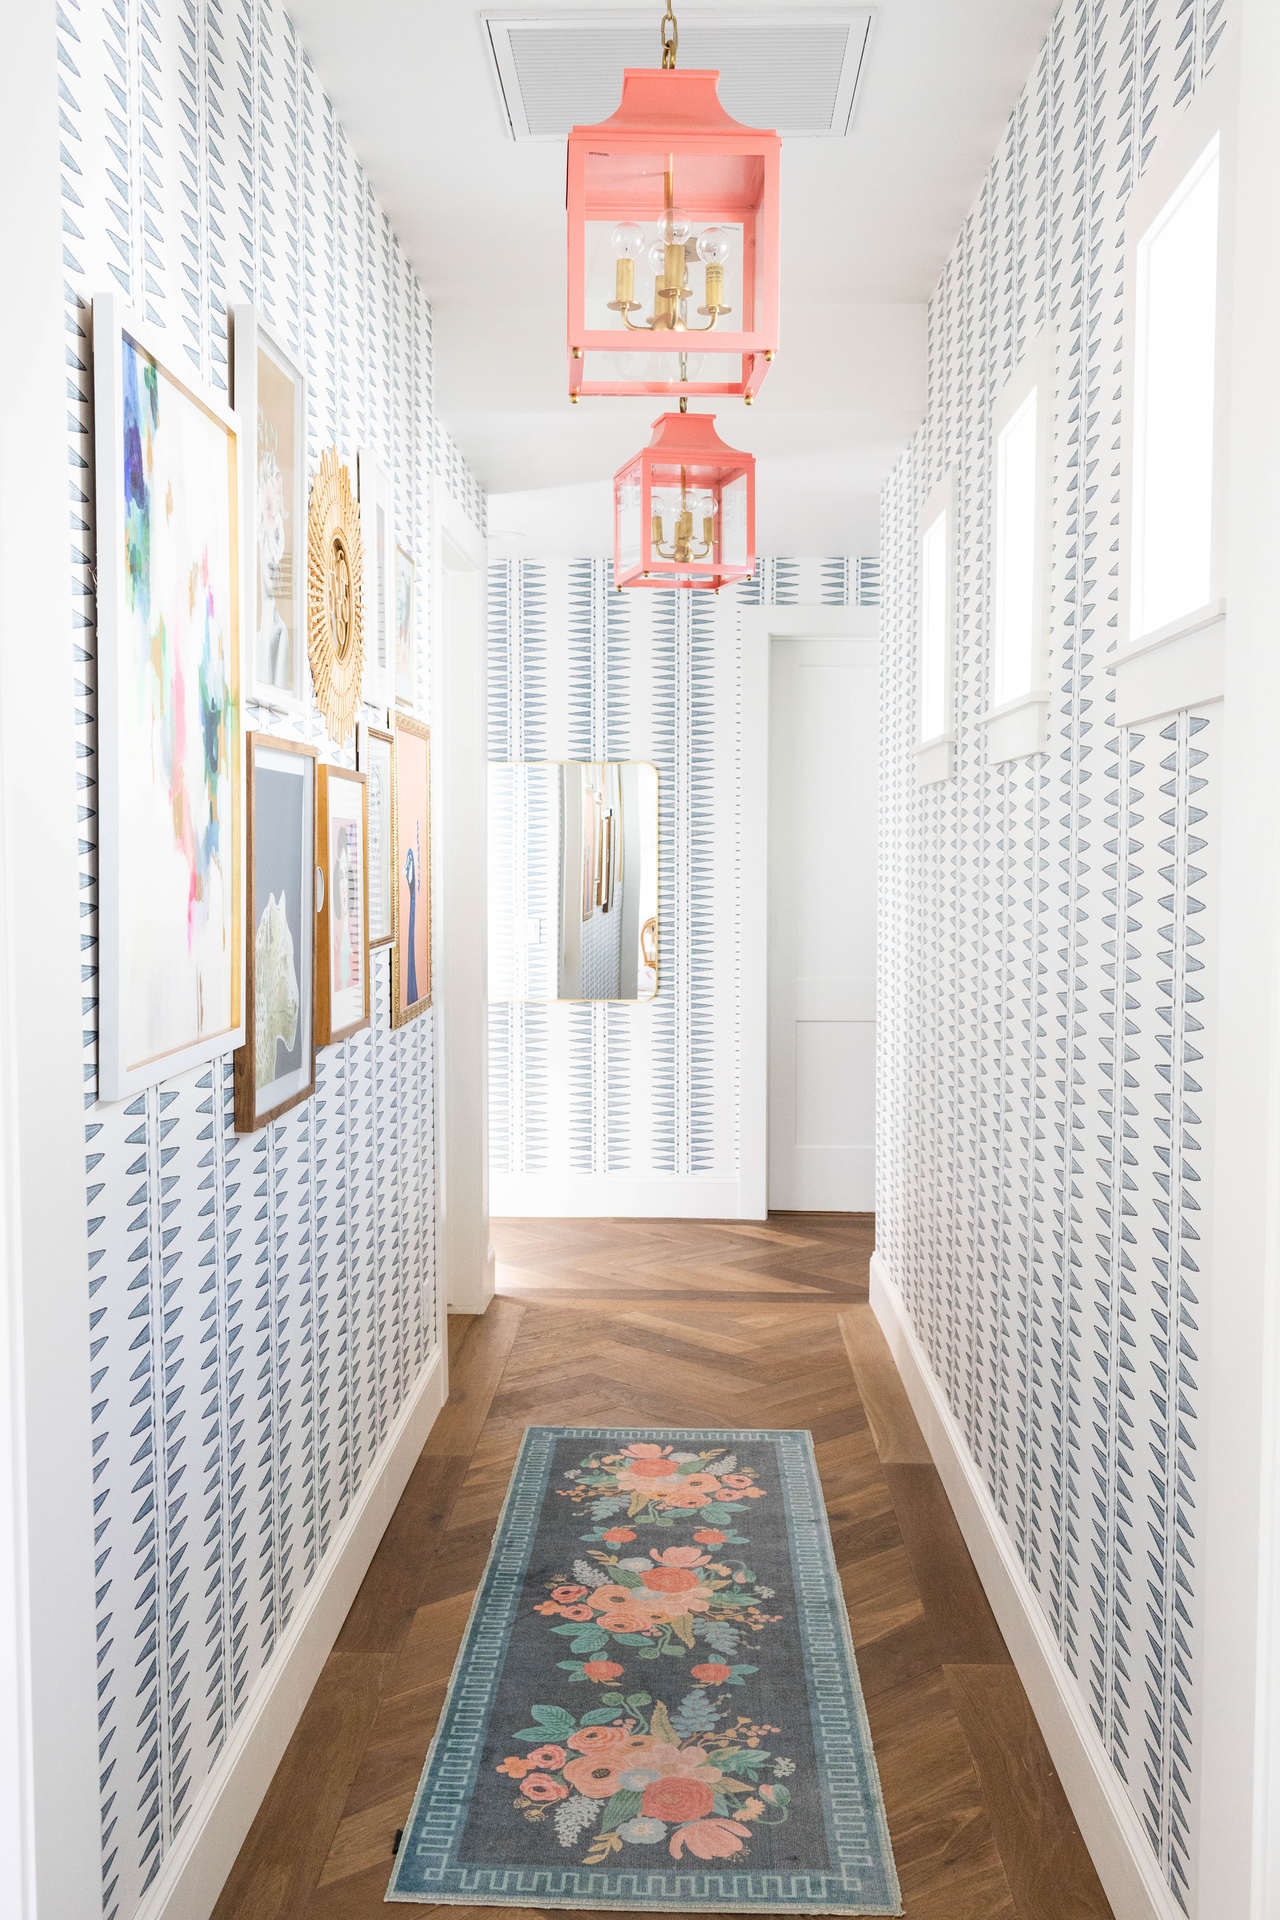 Jo Gick's hallway in Quill (Cadet) wallpaper | Coral & Tusk for Hygge & West